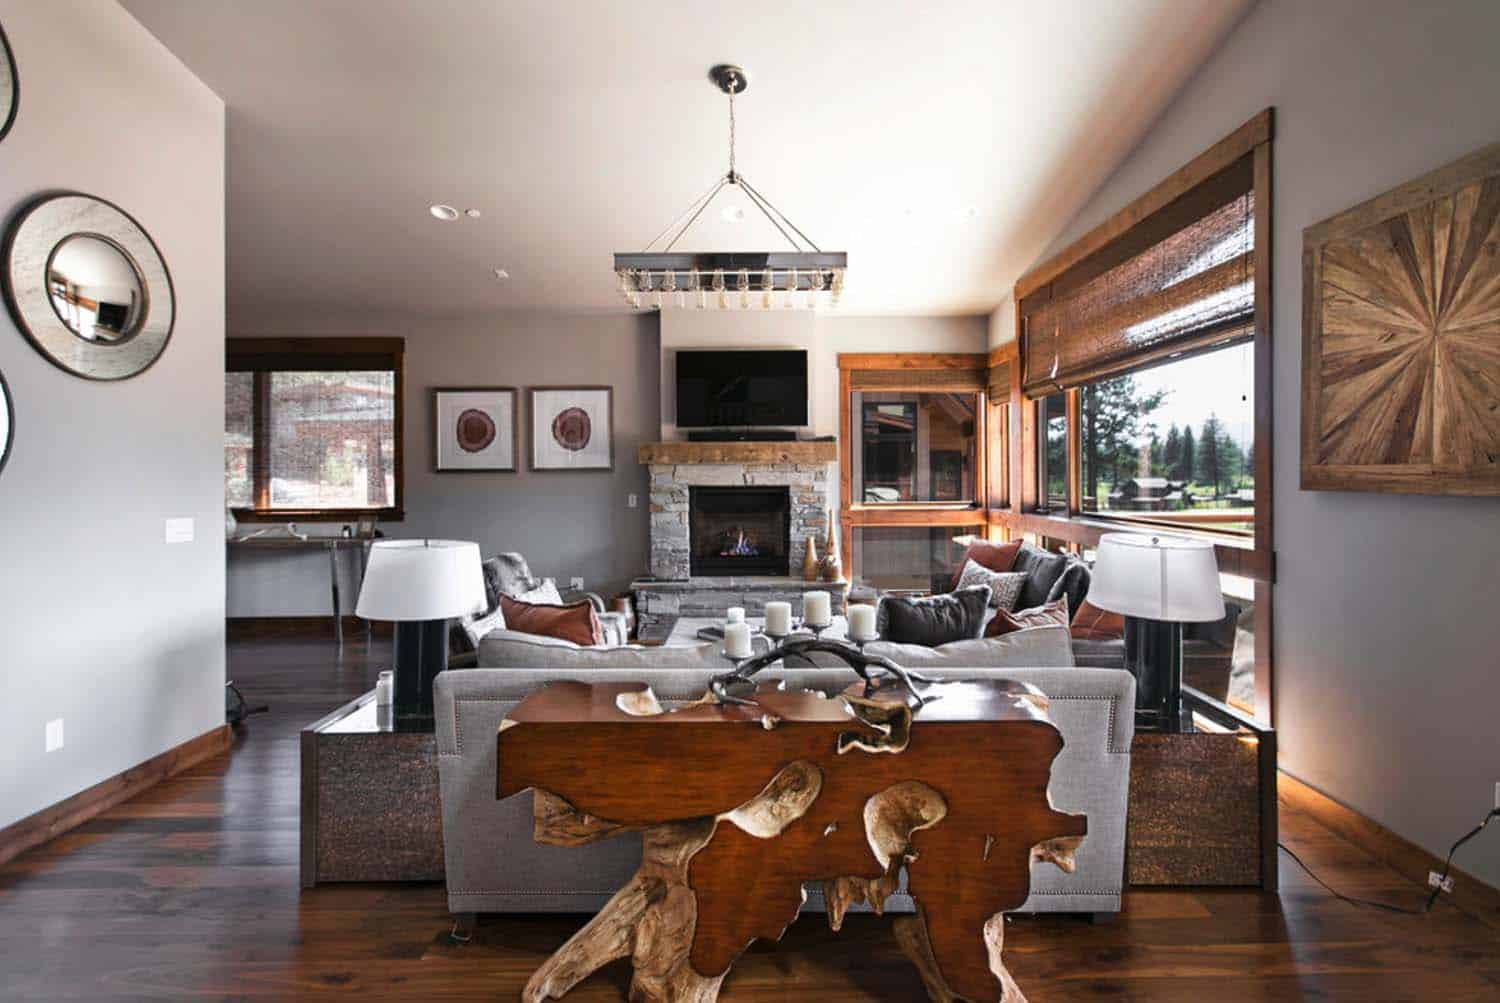 Mountain Contemporary Home-Summit Sands-02-1 Kindesign